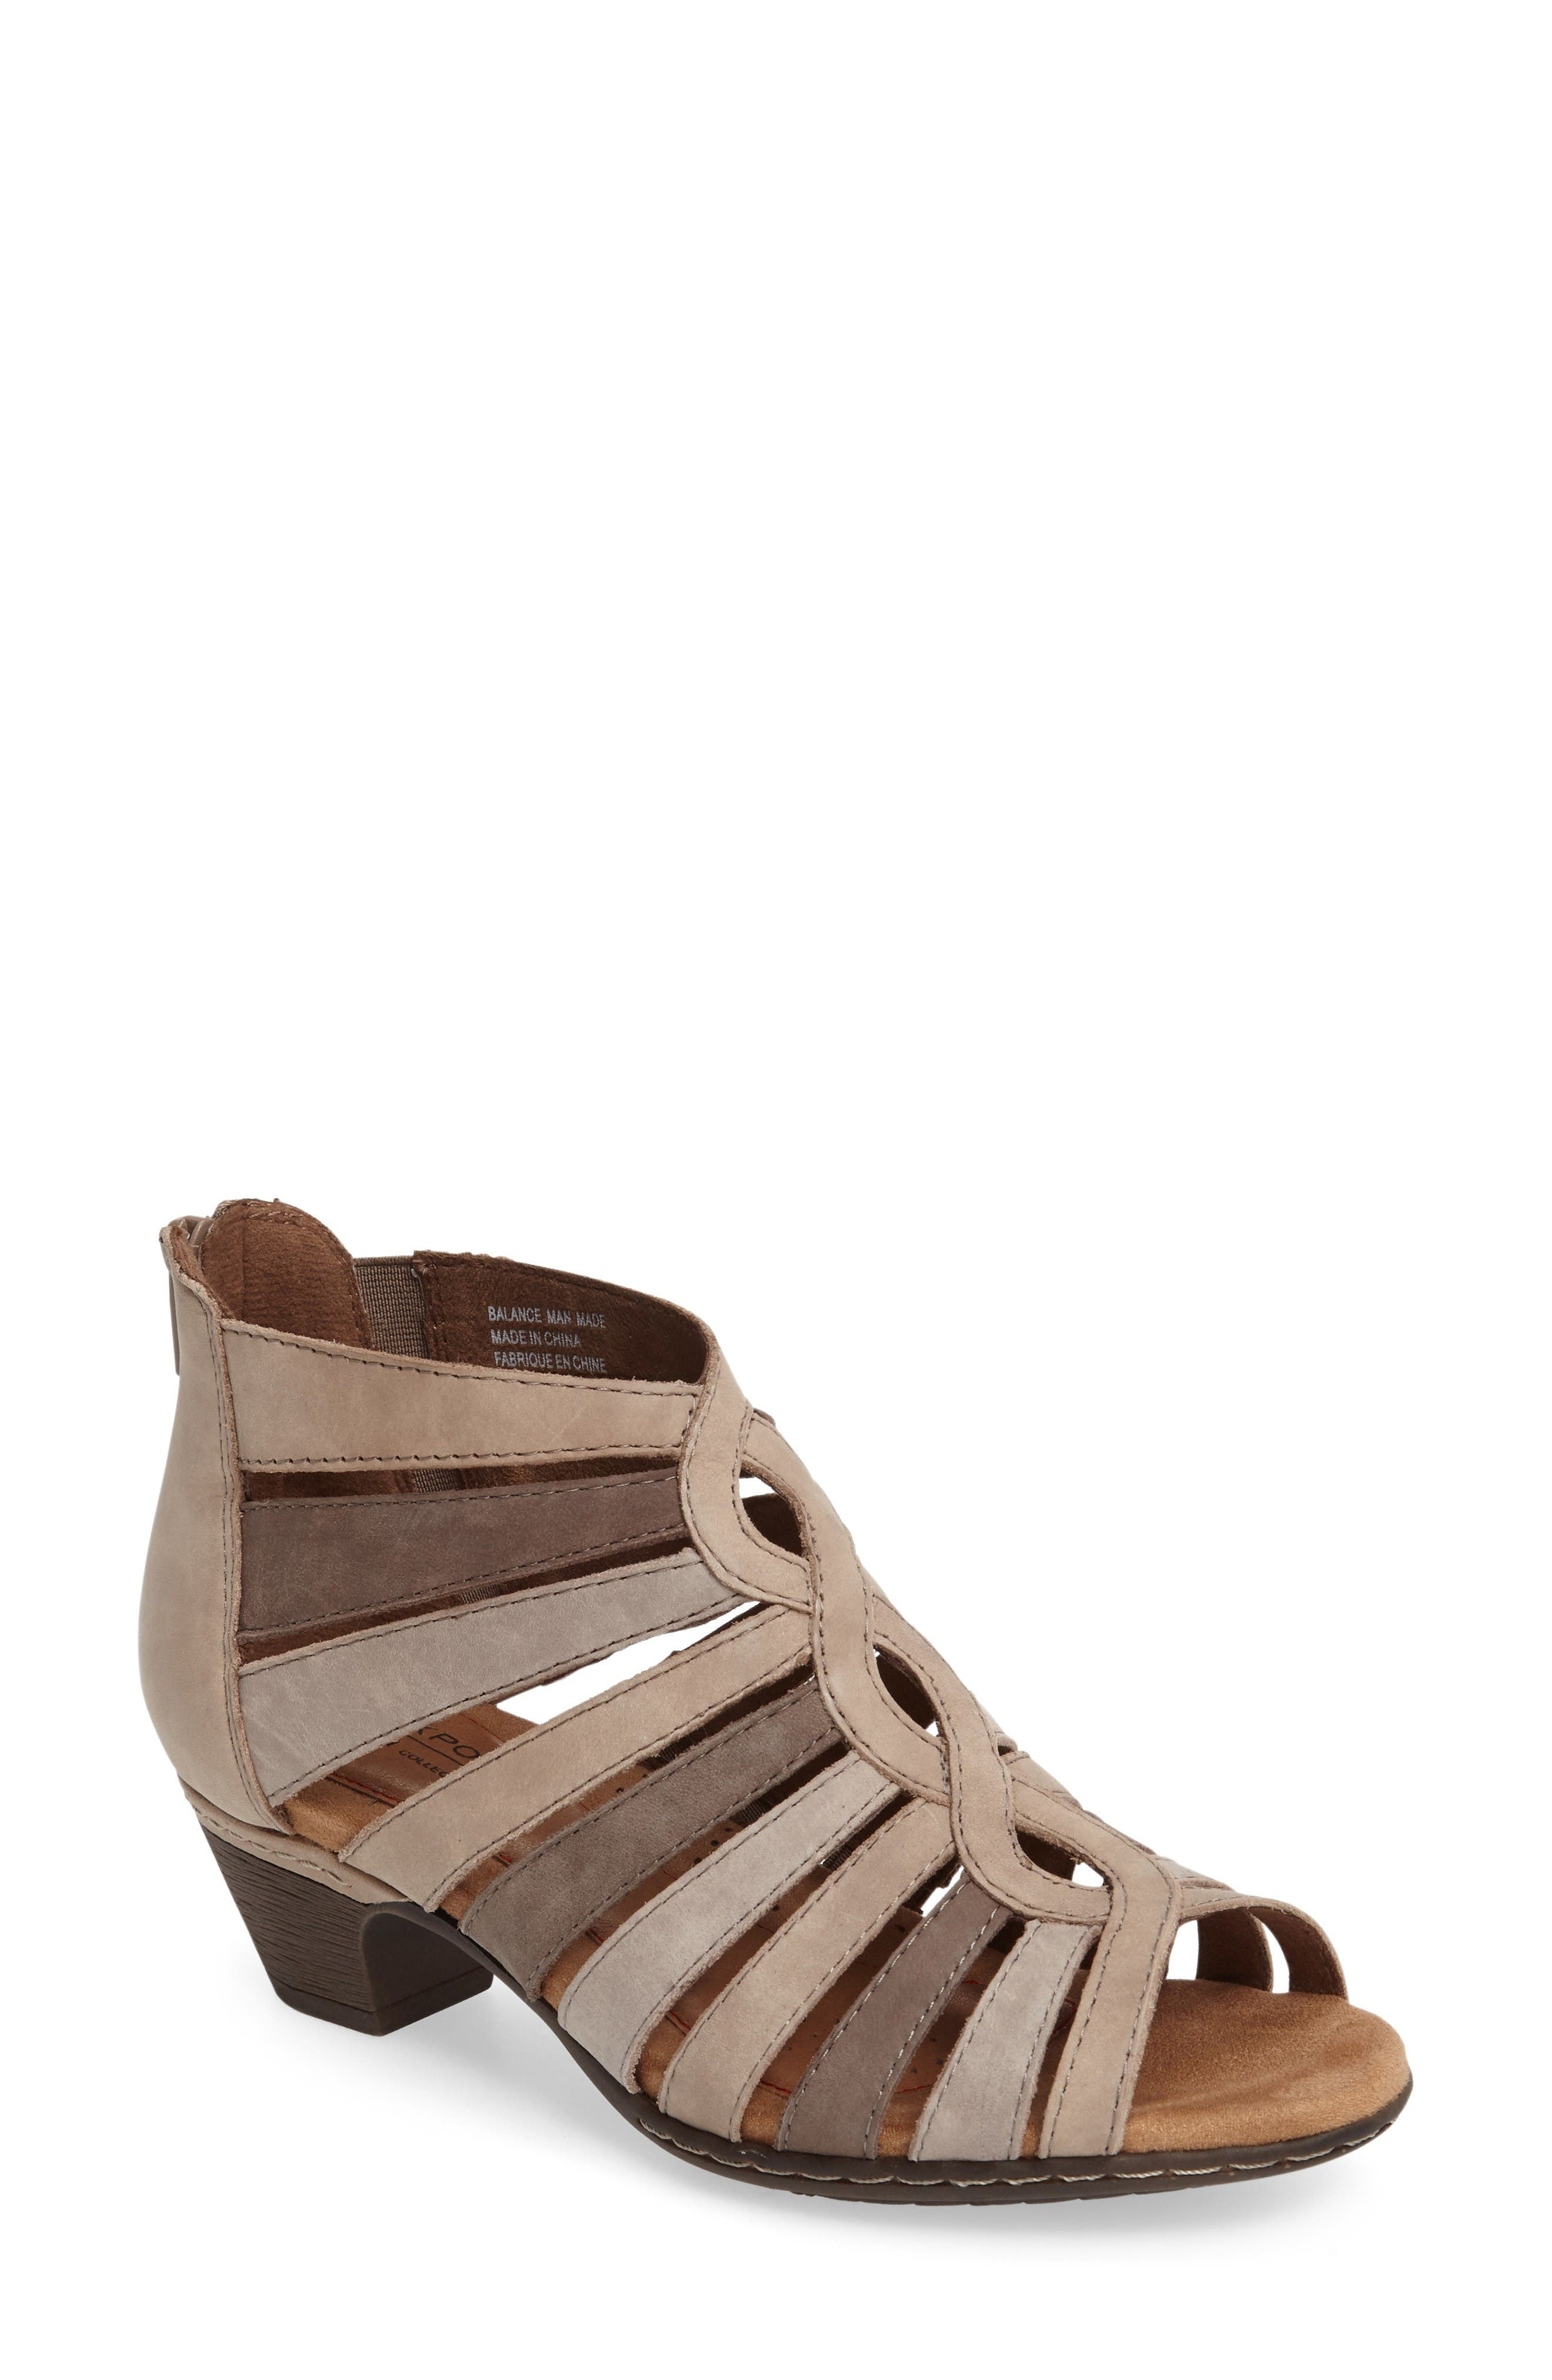 Abbott Caged Sandal,                             Main thumbnail 1, color,                             Light Khaki Multi Leather